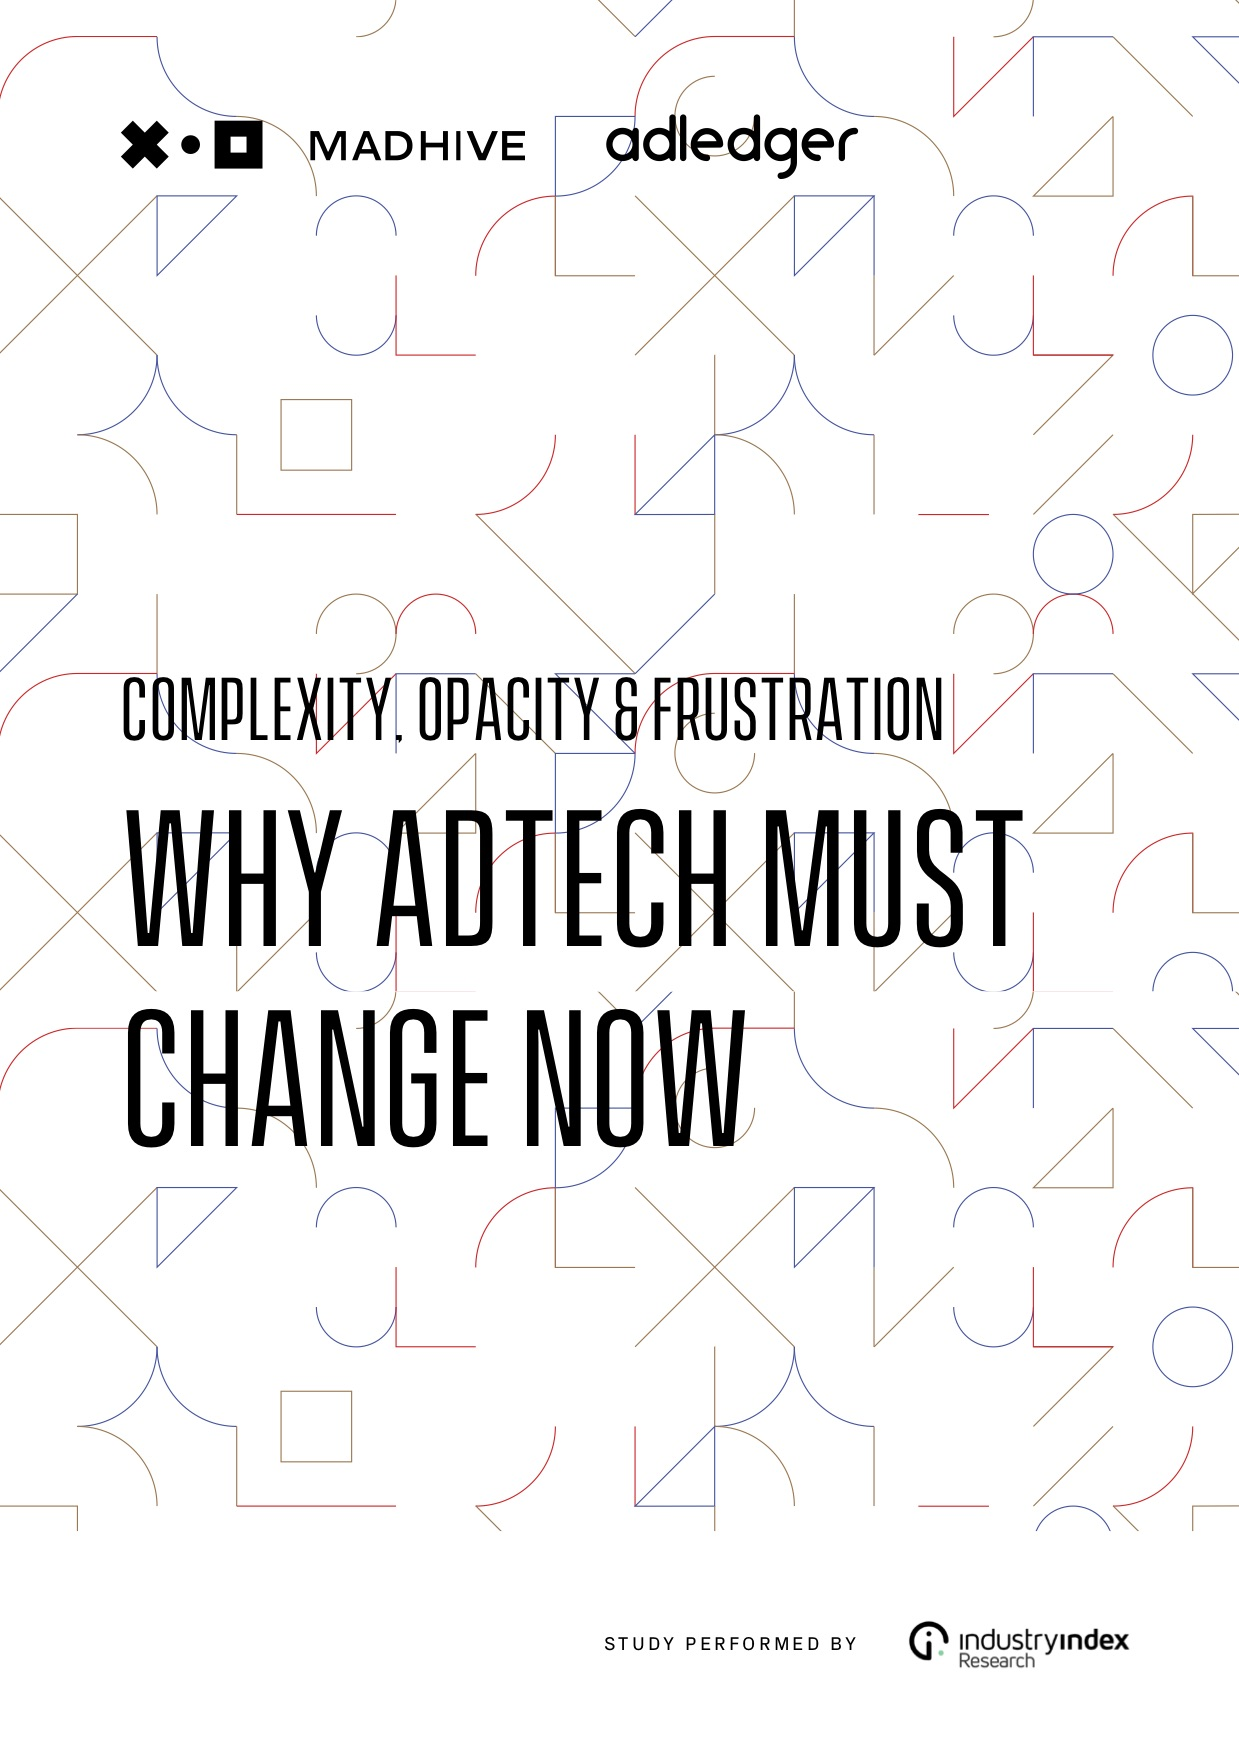 MadHive_AdLedger_WhitePaper_2019_Complexity__Opacity___Frustration.jpg